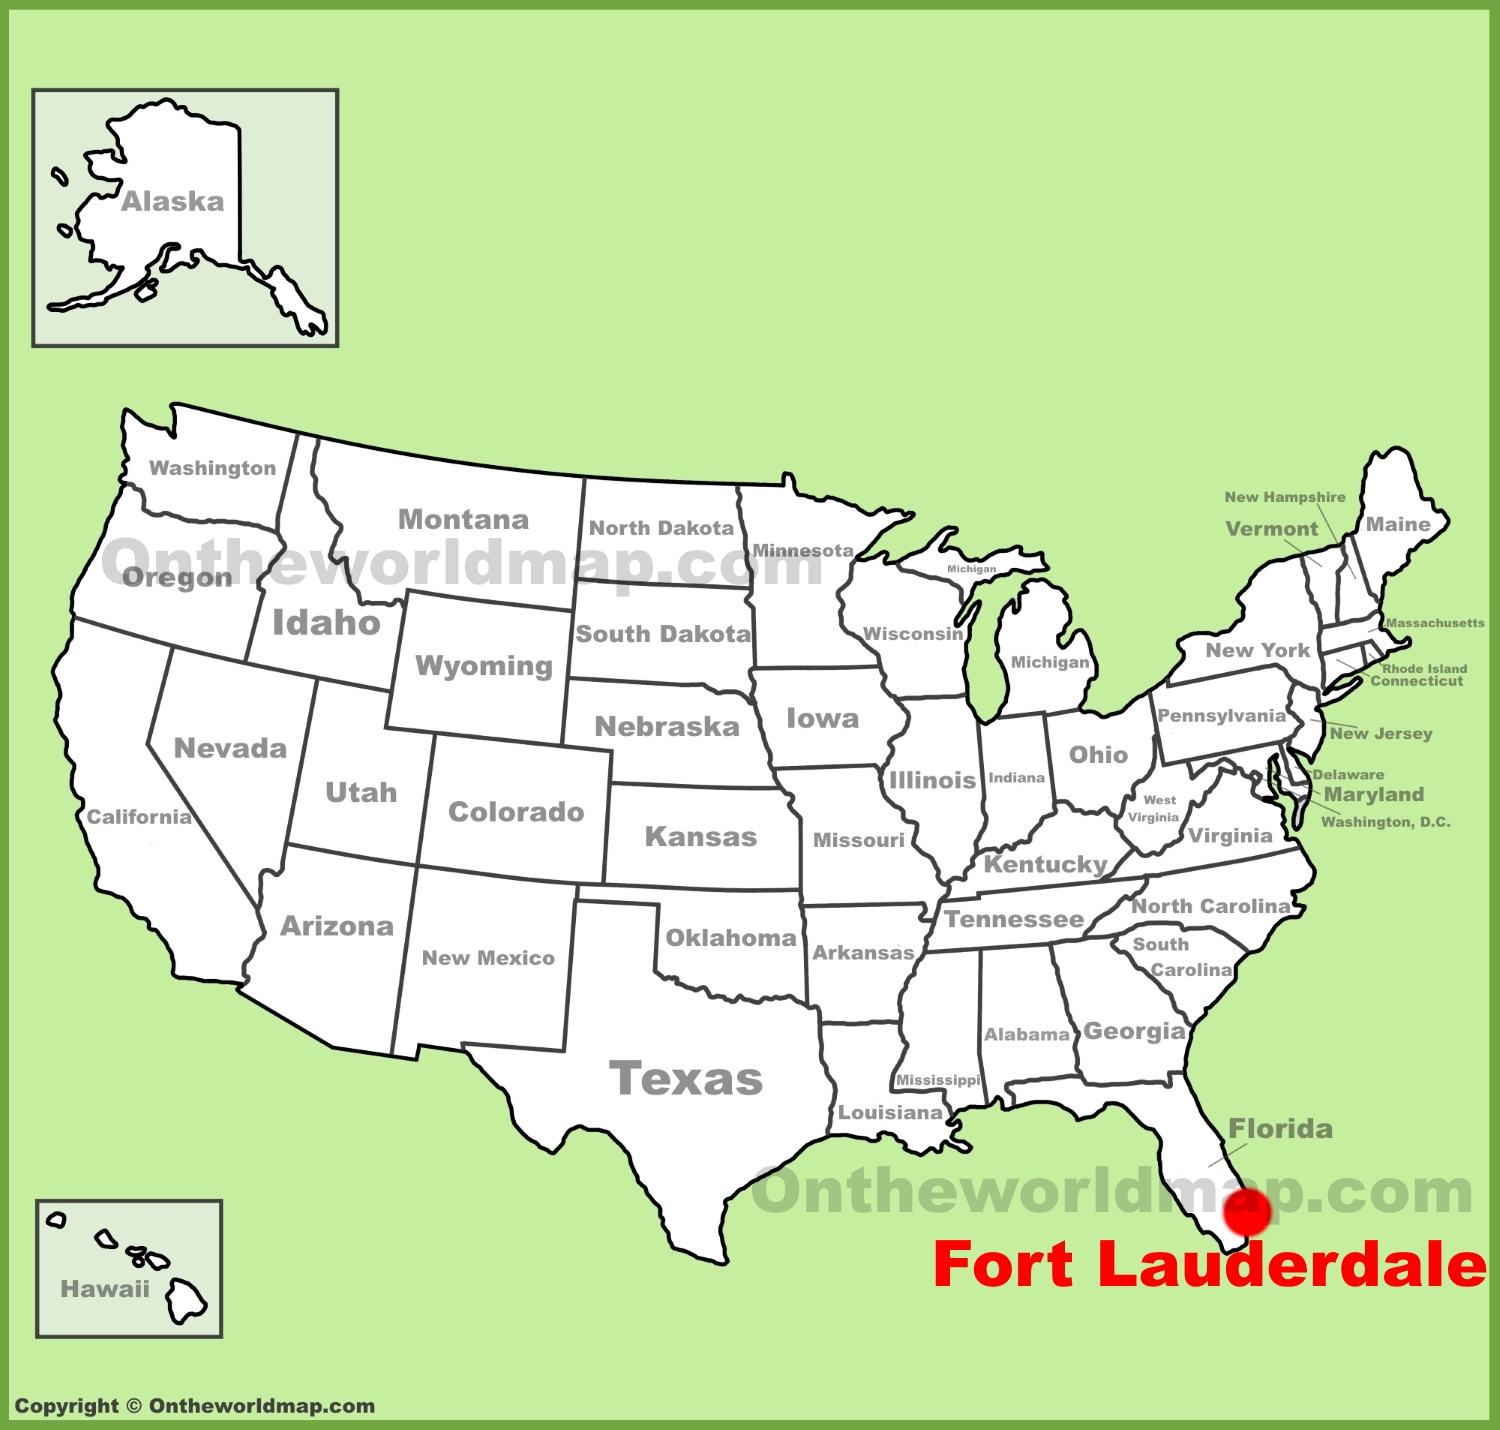 Ft Lauderdale On Map Of Florida.Fort Lauderdale Maps Florida U S Maps Of Fort Lauderdale